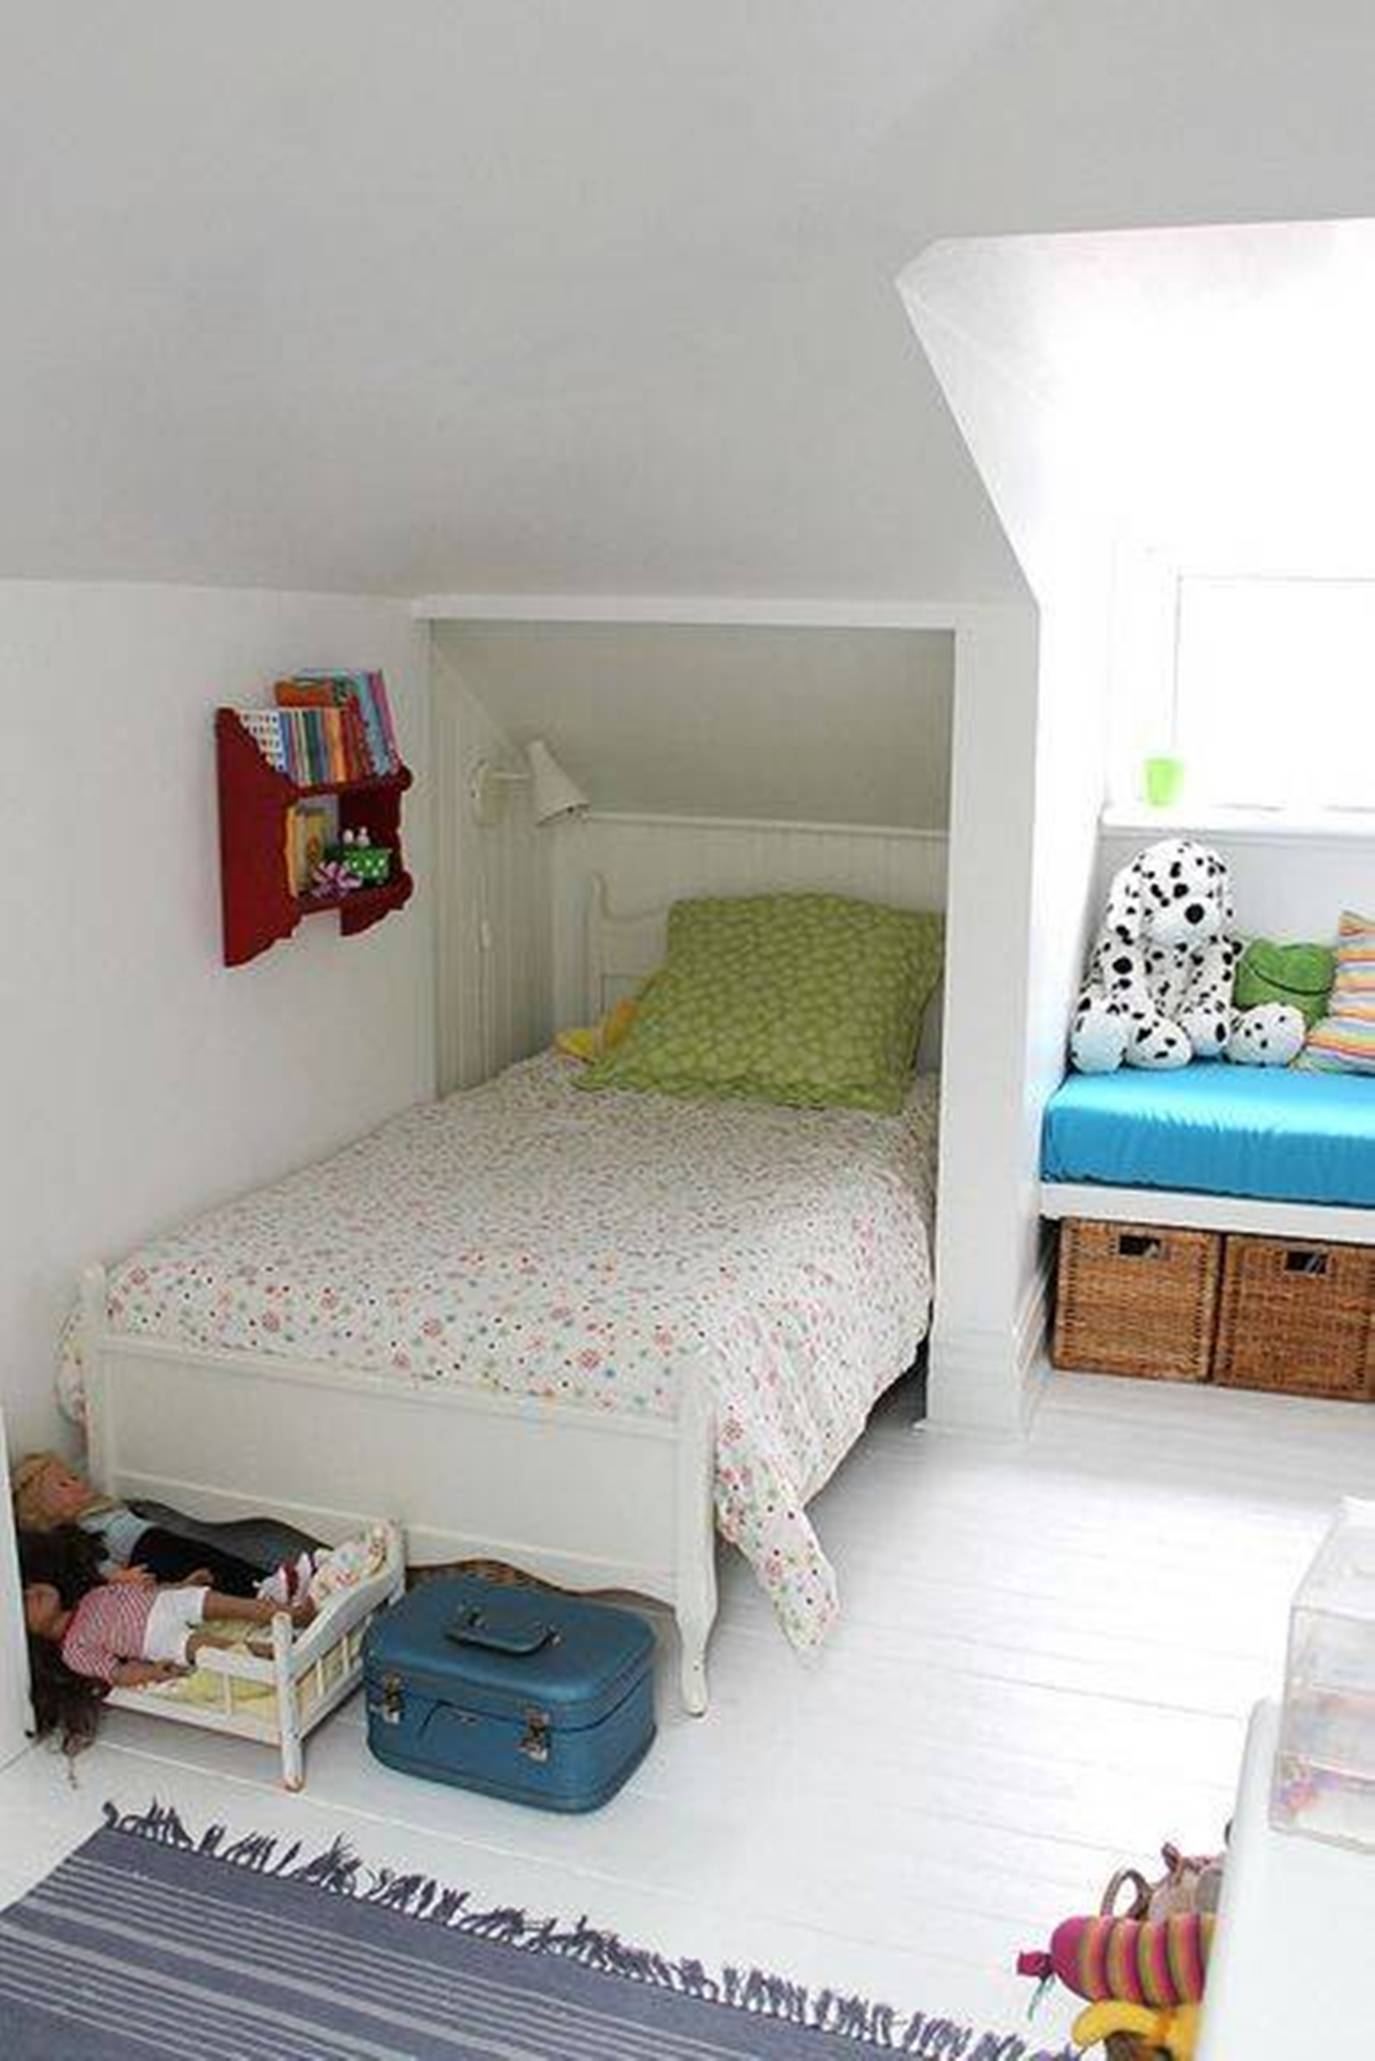 ideas for a small attic bedroom - Adorable designs for an attic space